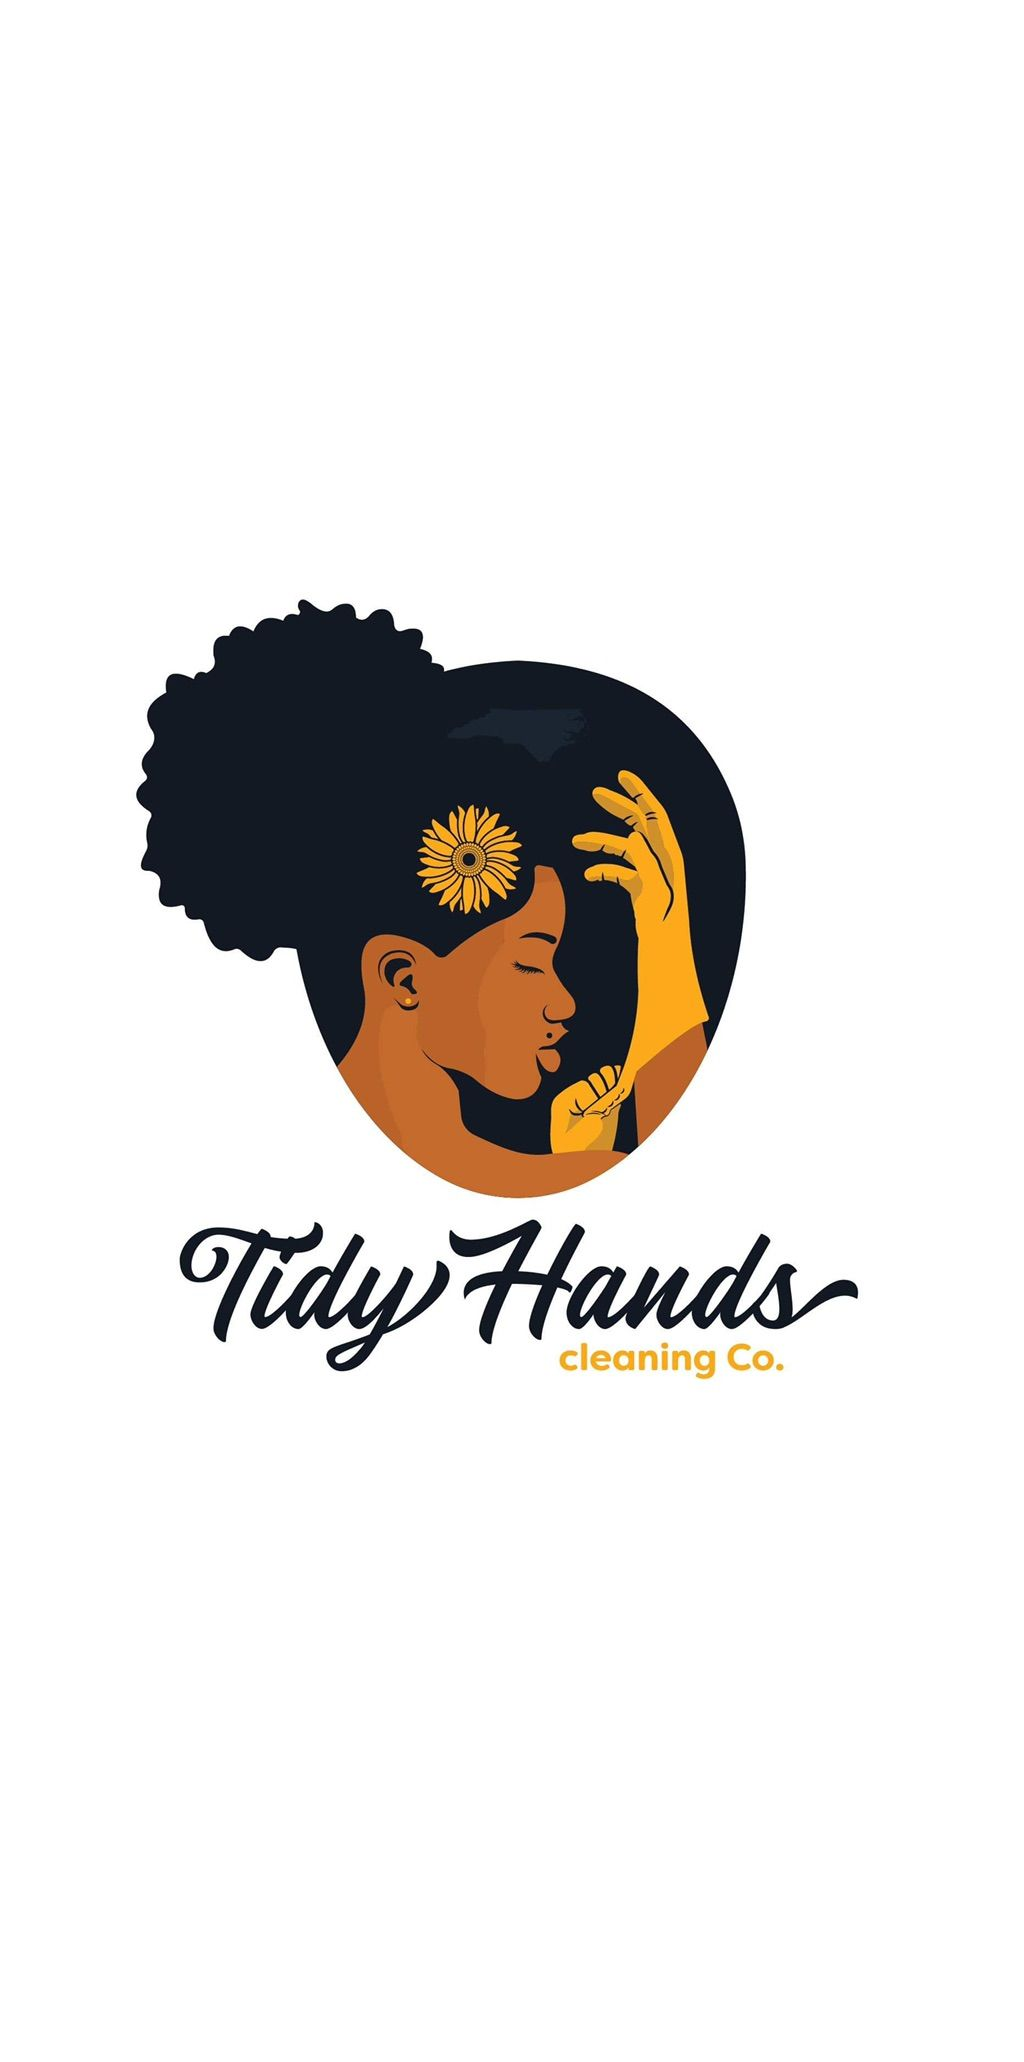 Tidy Hands Cleaning Company